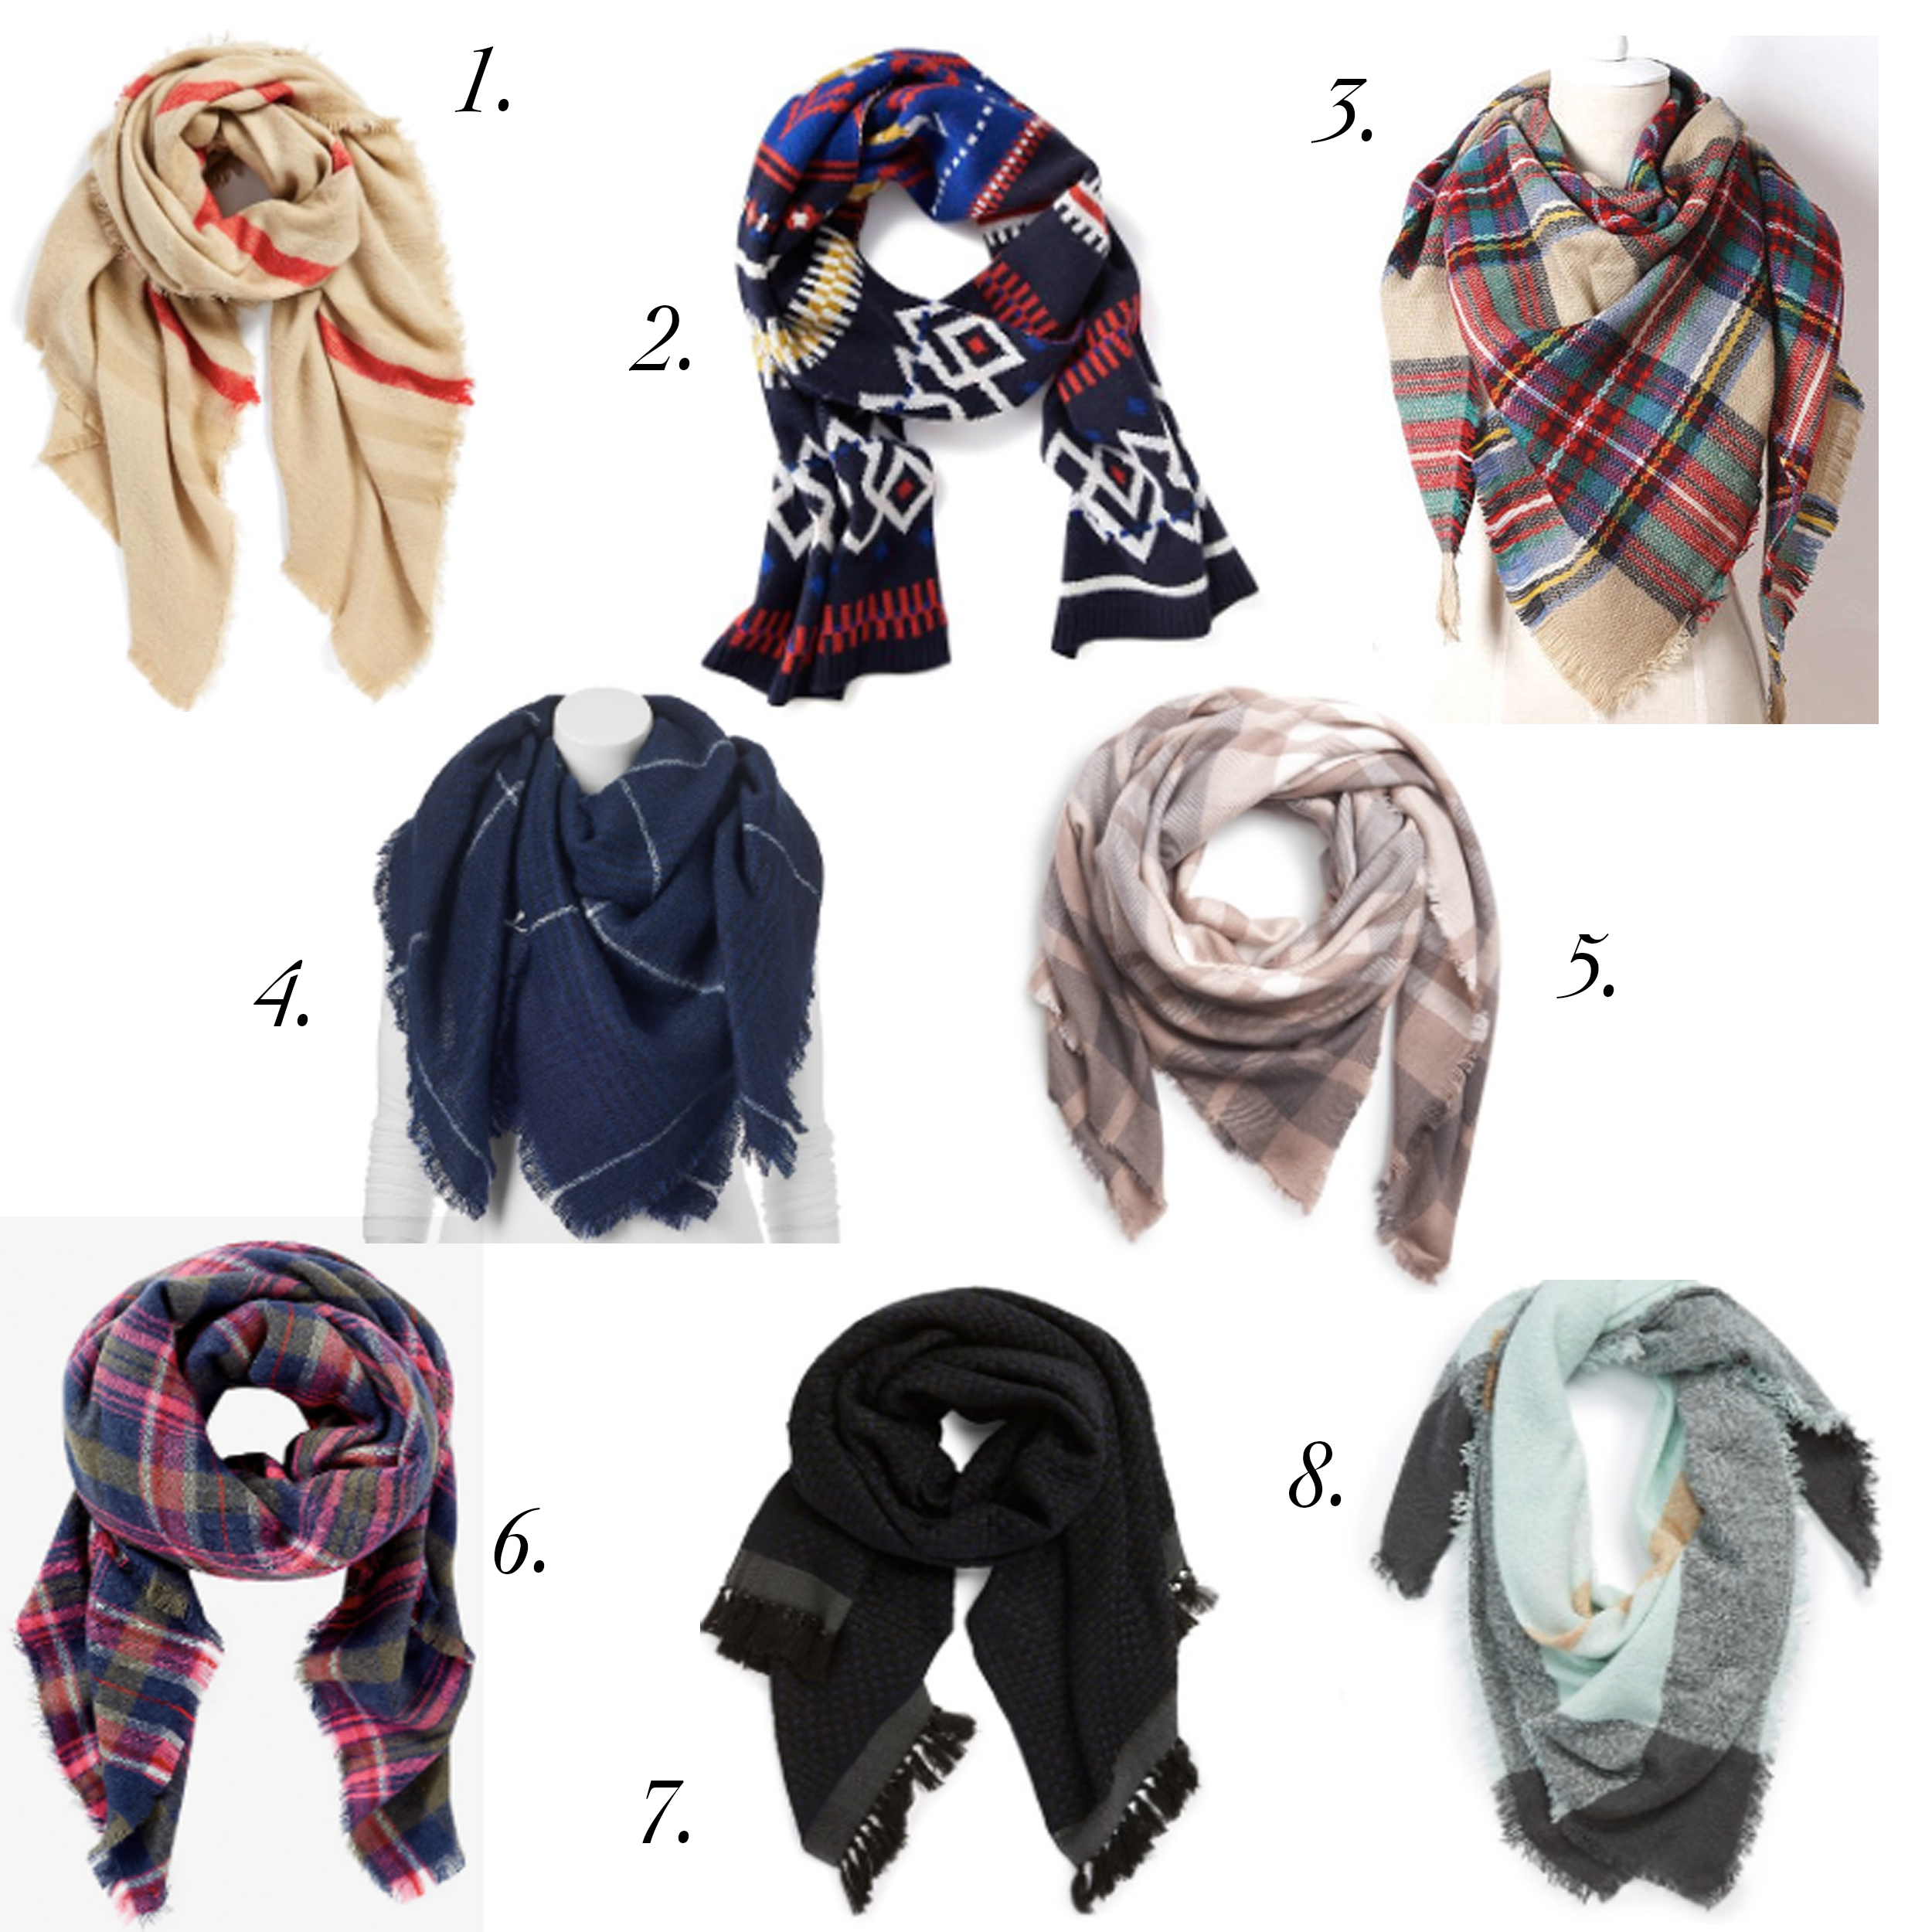 missyonmadison, fashion blogger, blanket scarf, blanket scarves, how to wear a scarf, how to wear a blanket scarf, la blogger, fall style, gift guide, gift guide 2015, sales, scarves on sale, kohls, nordstrom, etsy, asos, holiday gift guide, gift ideas,